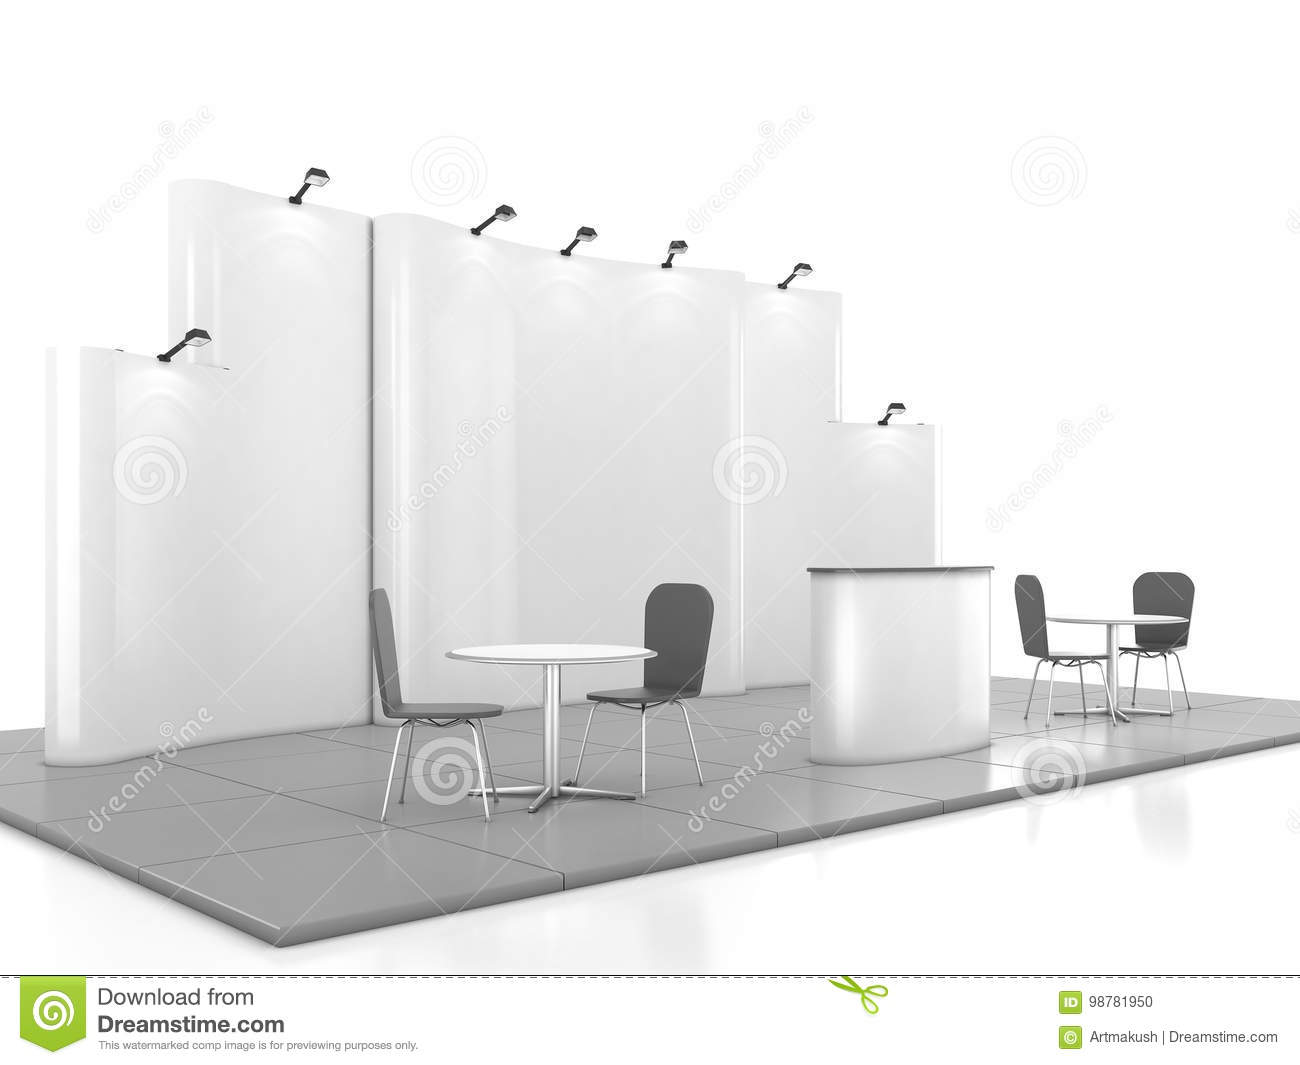 D Exhibition Stand Free Download : Blank creative exhibition stand design with color shapes. booth